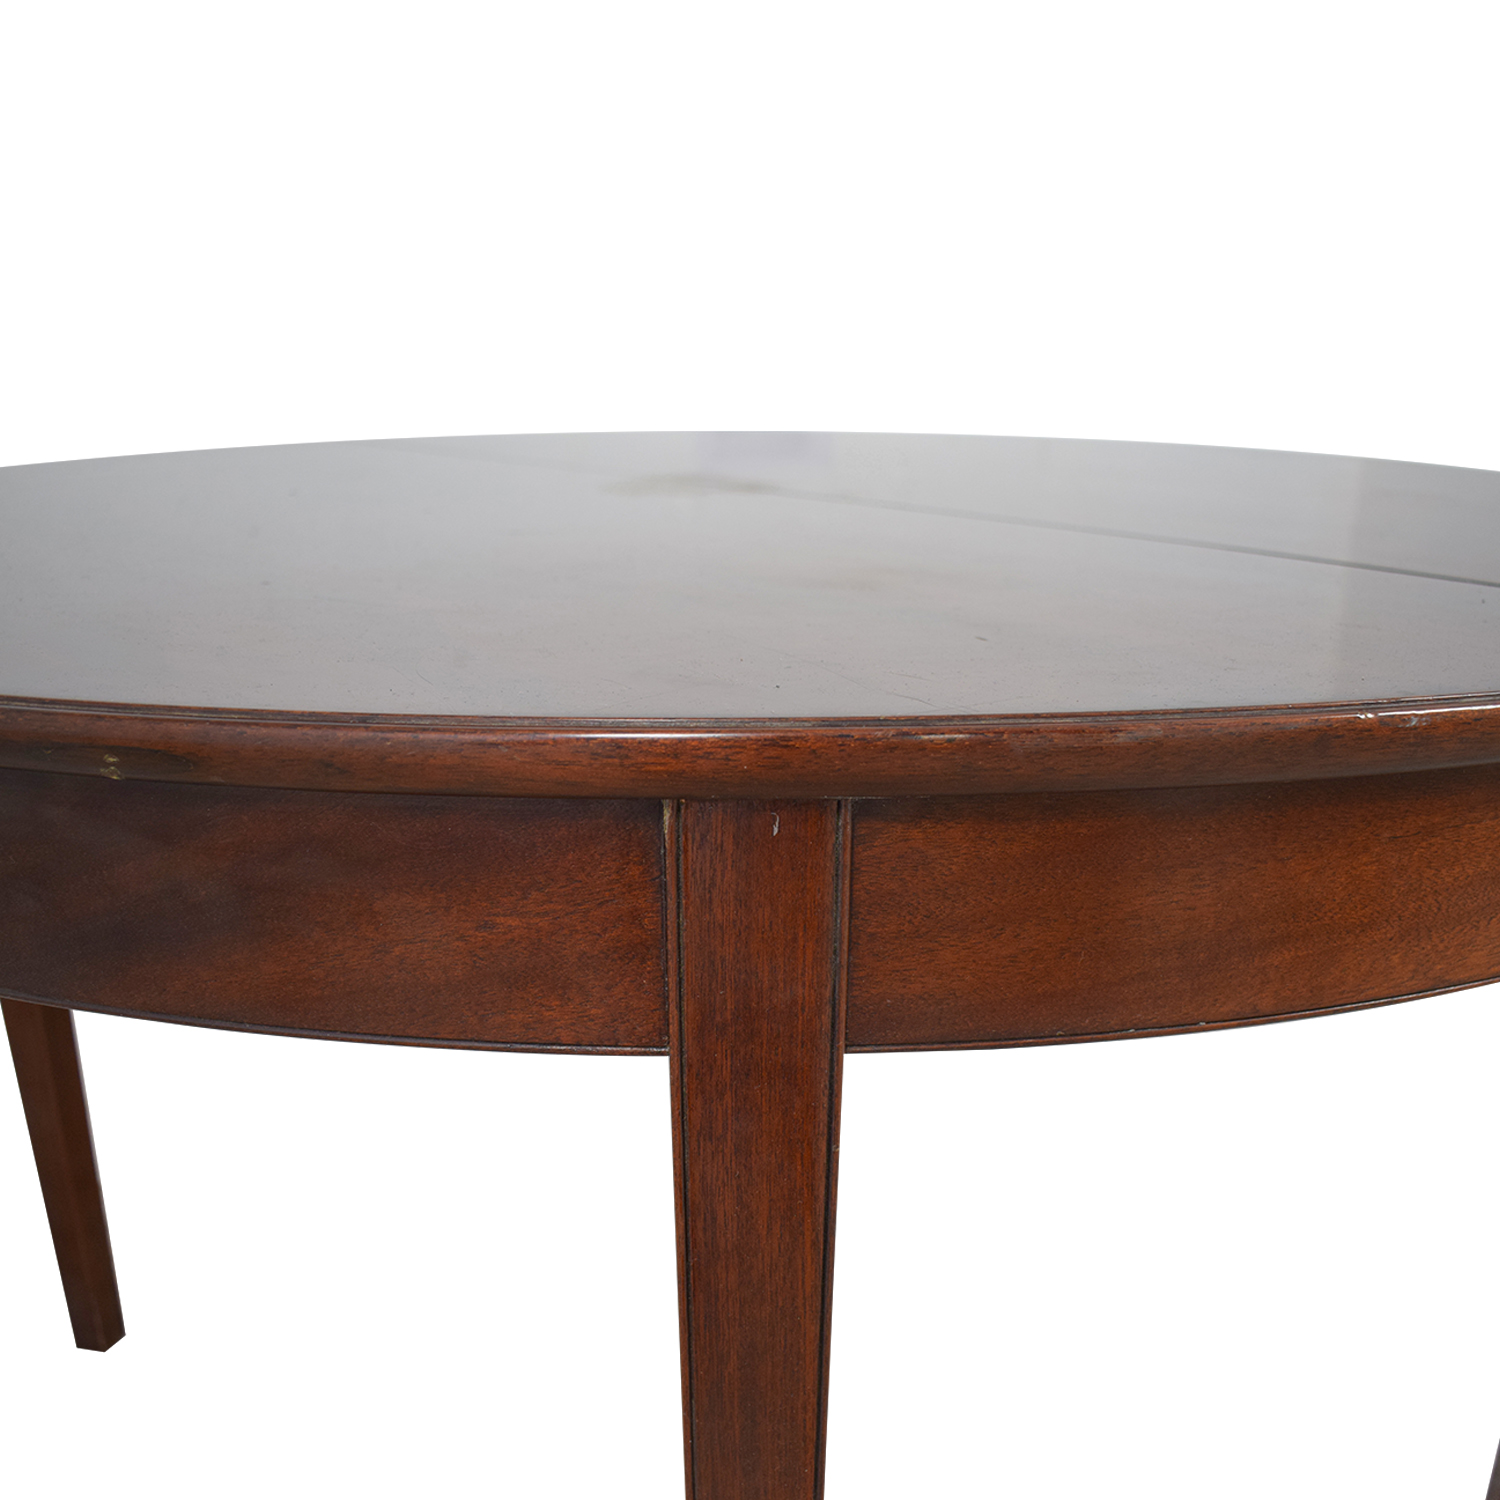 Jacob Kjaer Wyeth Round Extendable Dining Table / Tables